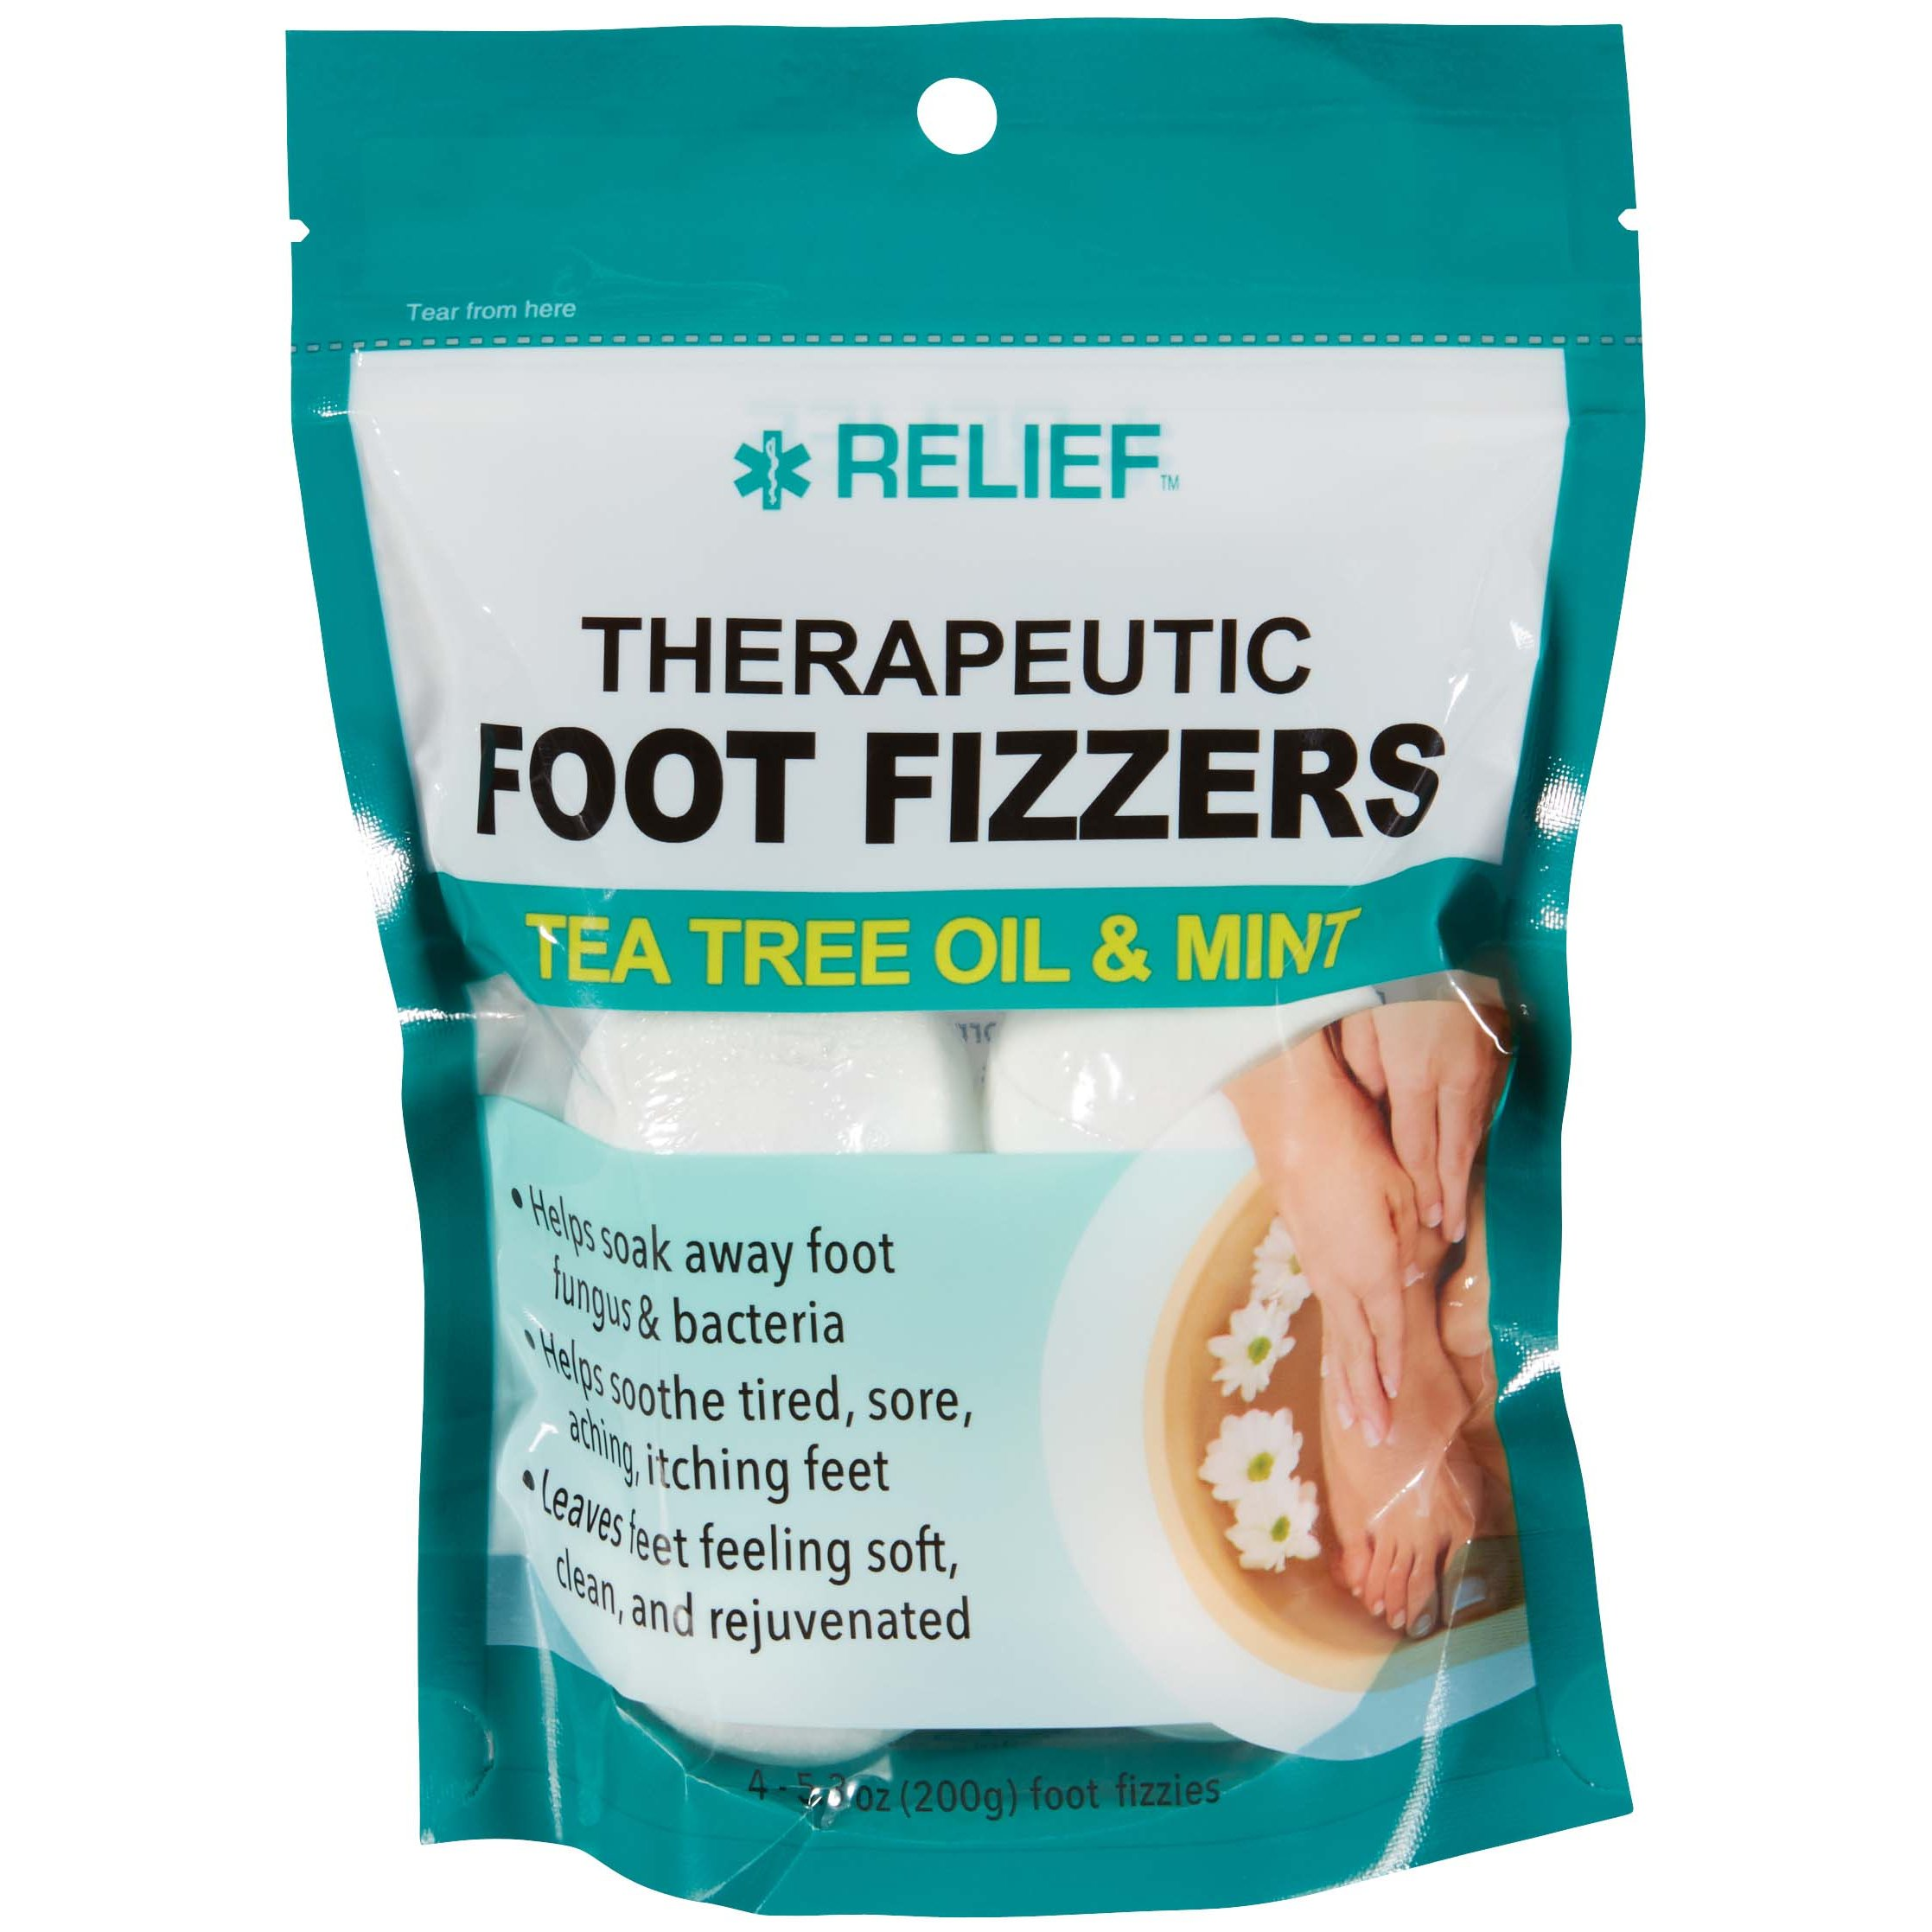 Relief Therapeutic Foot Fizzers Tea Tree Oil Mint Shop Foot Care At H E B